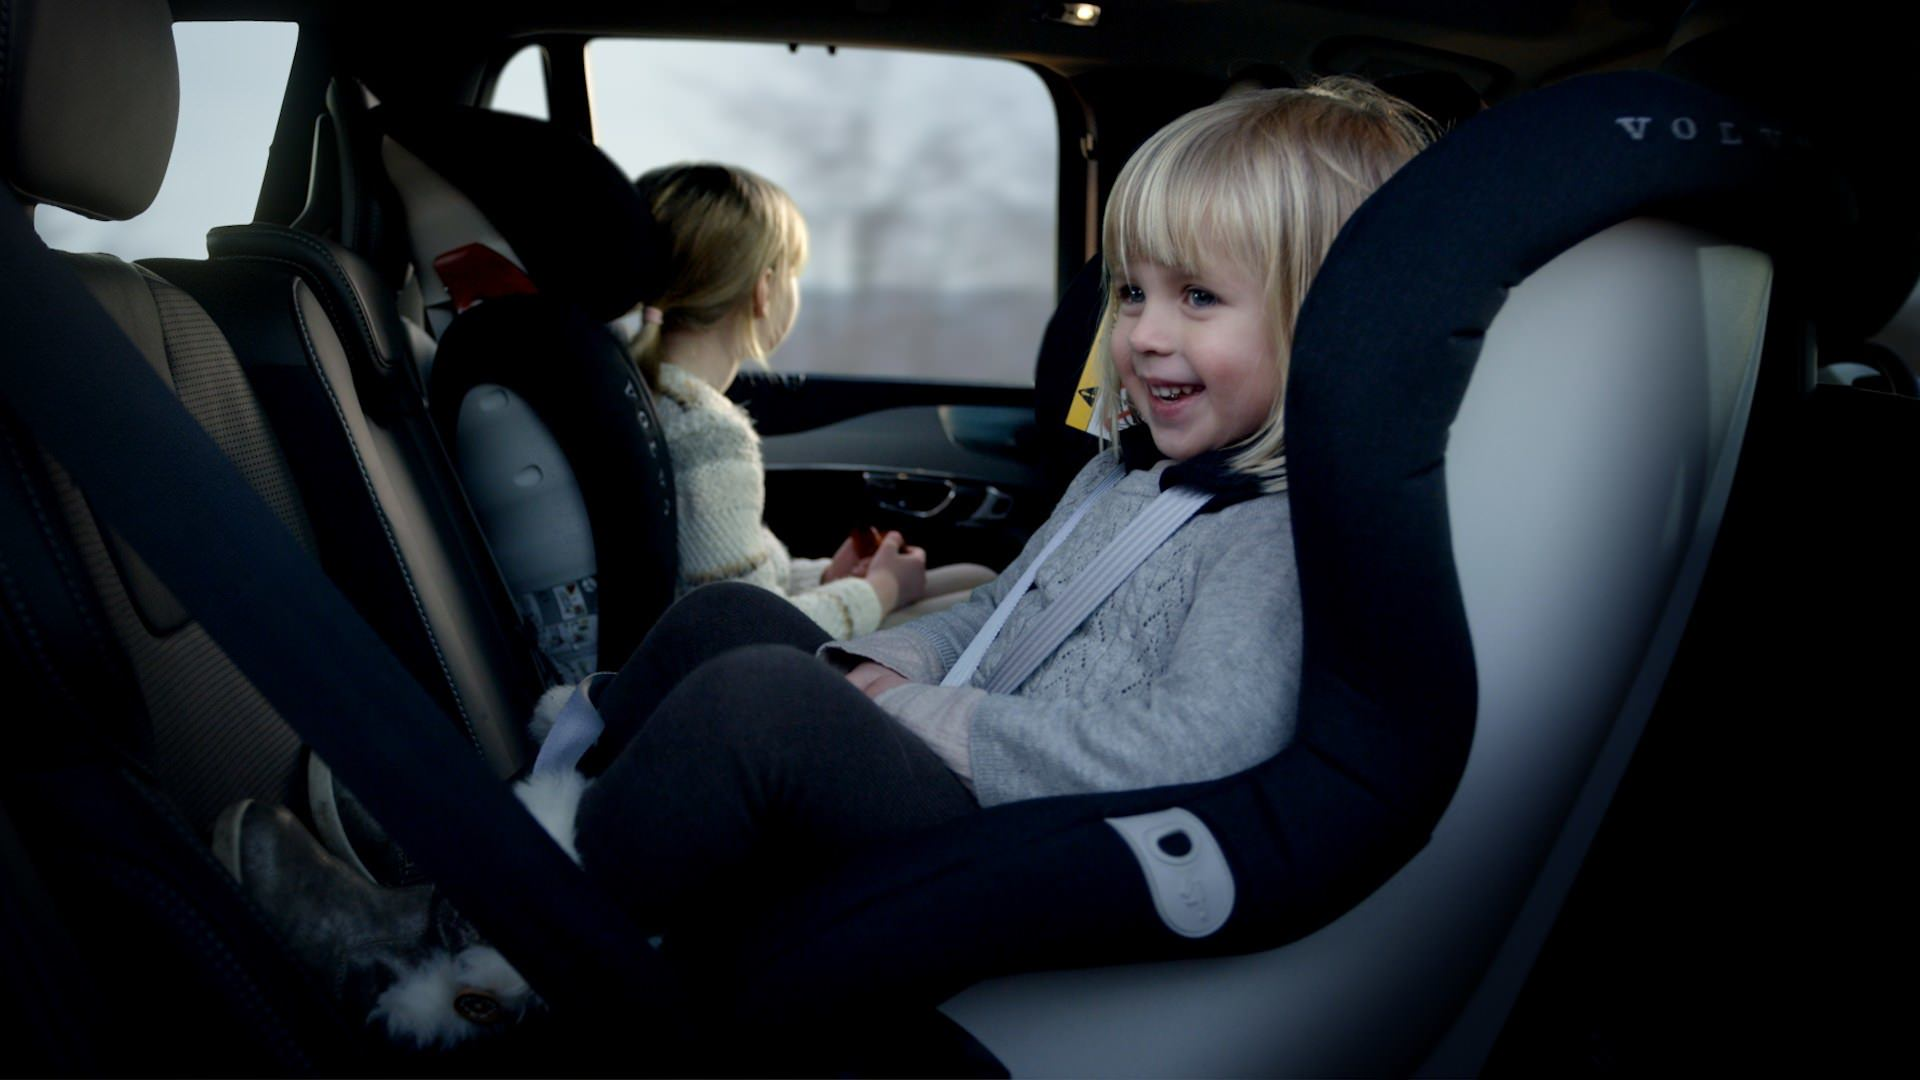 image of a smiling child in a child seat